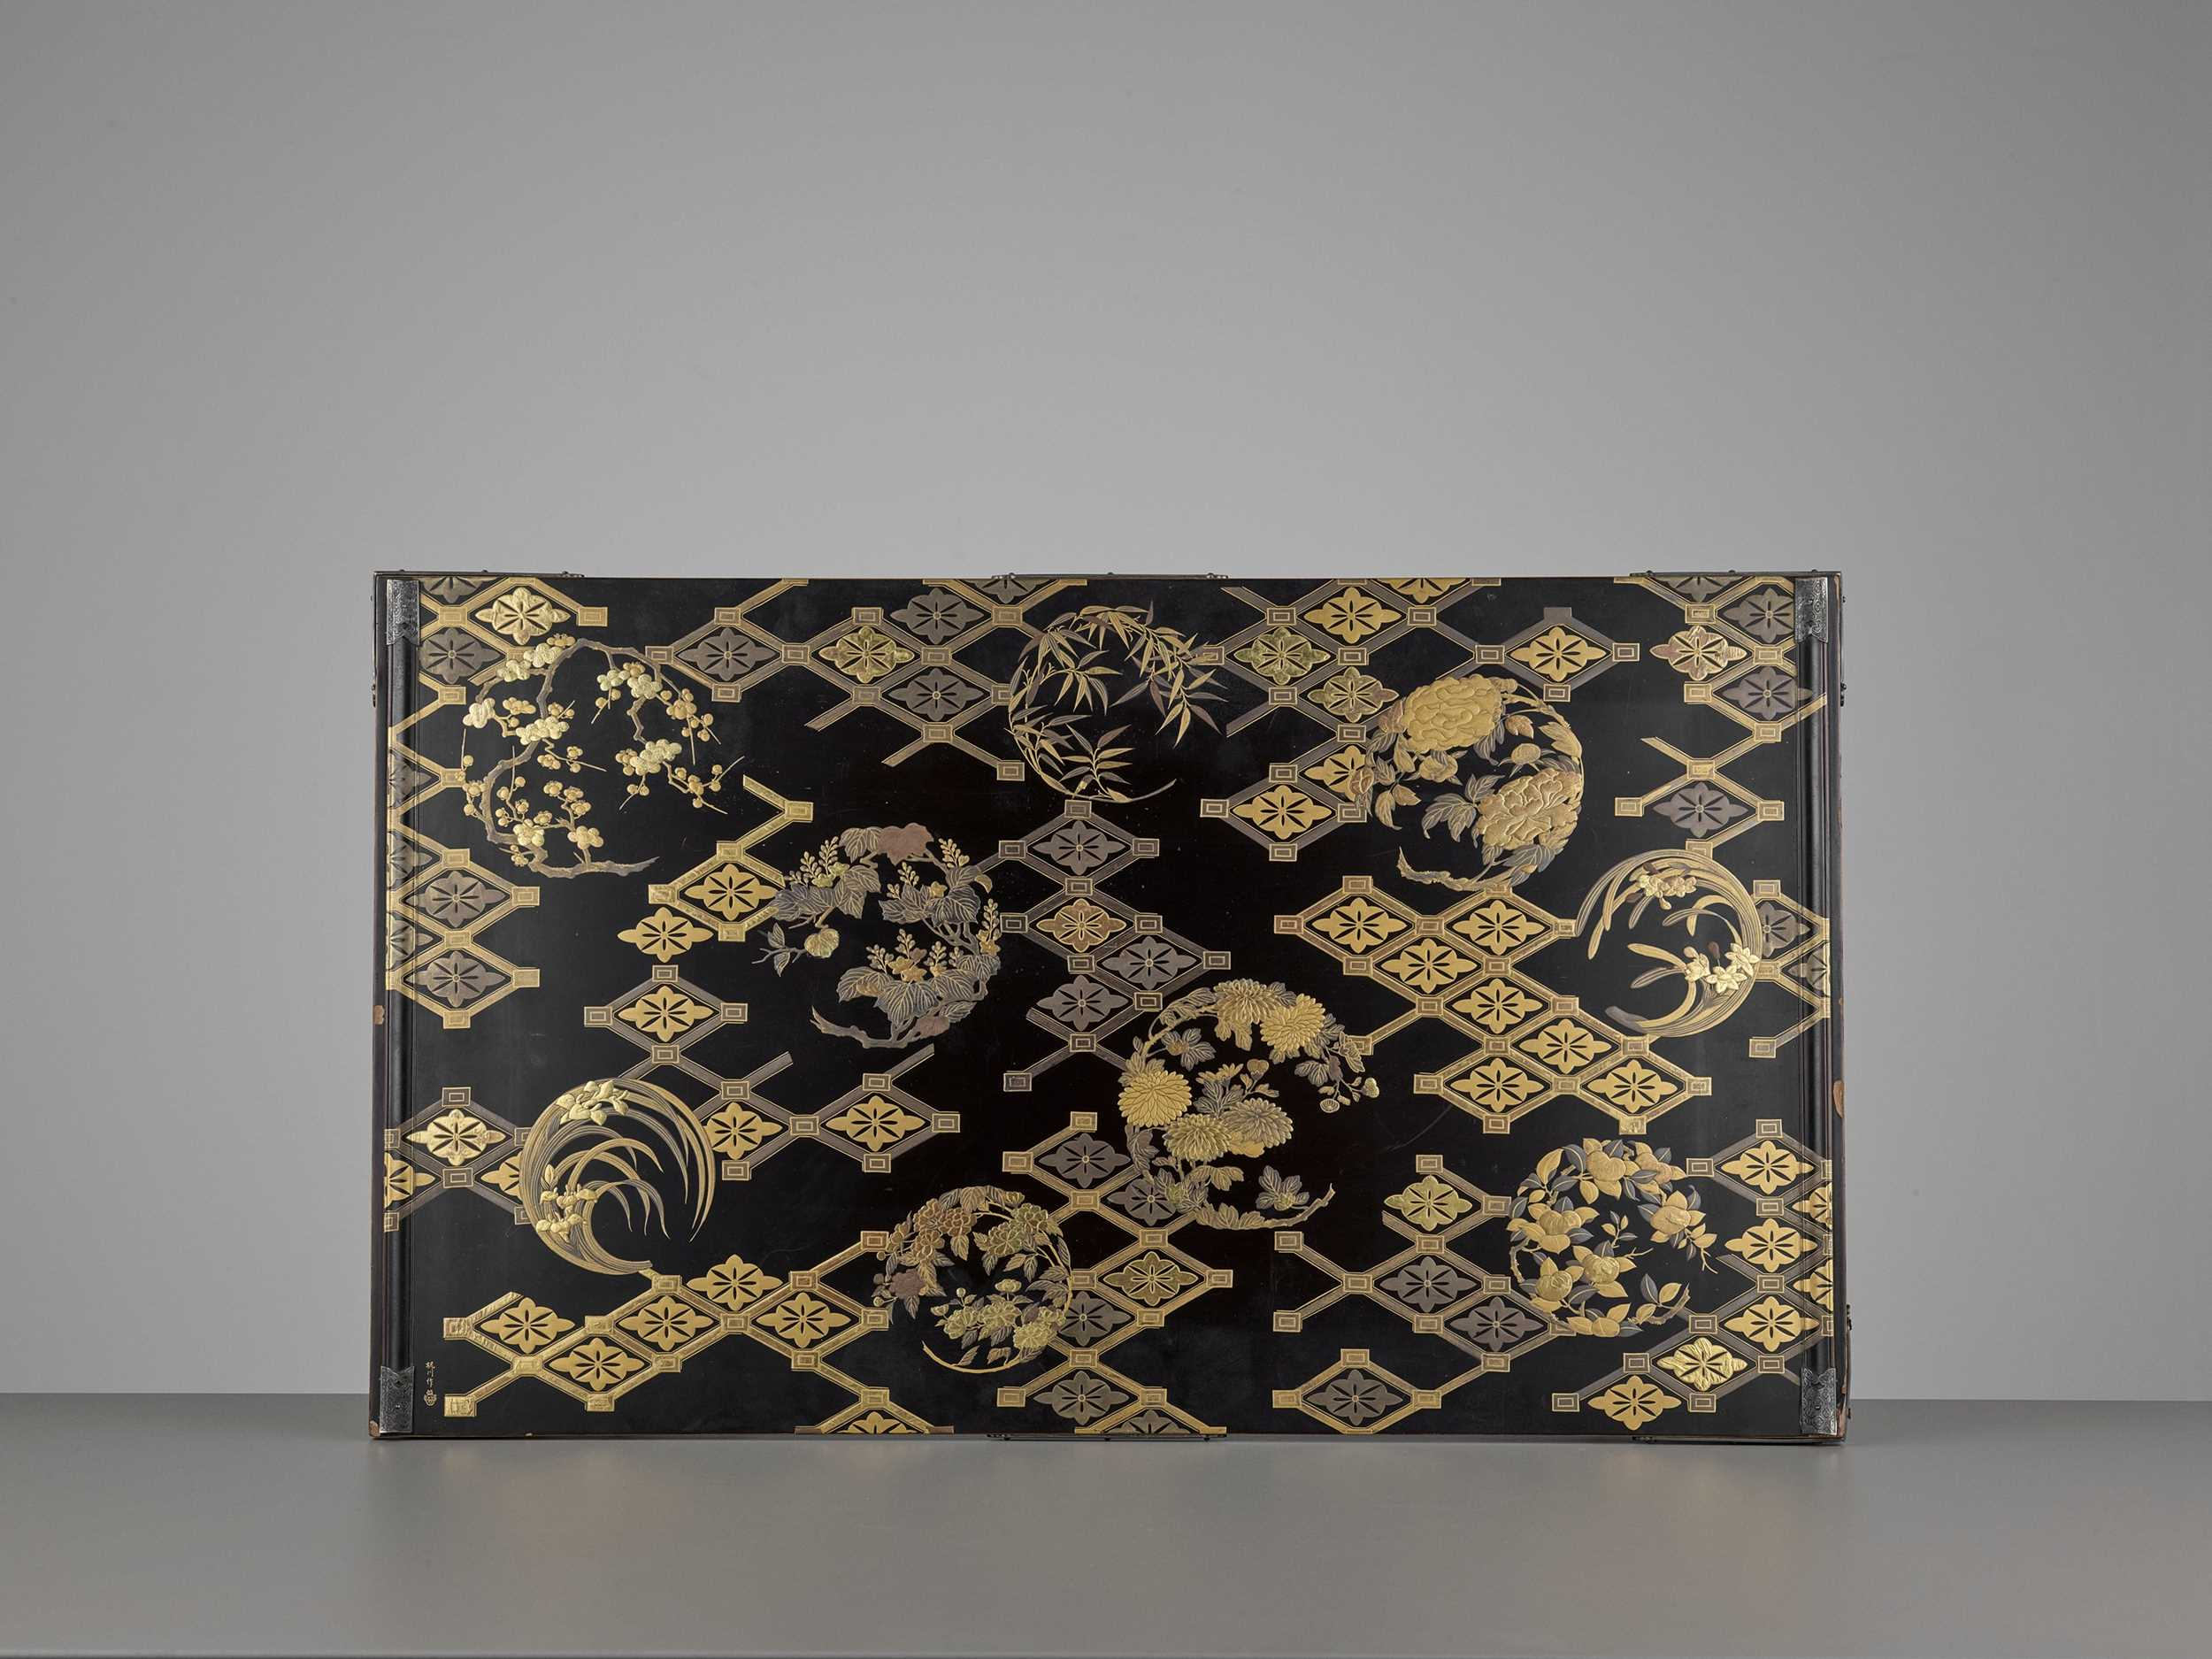 Lot 96 - KAJIKAWA: A RARE LACQUER BUNDAI (WRITING TABLE)